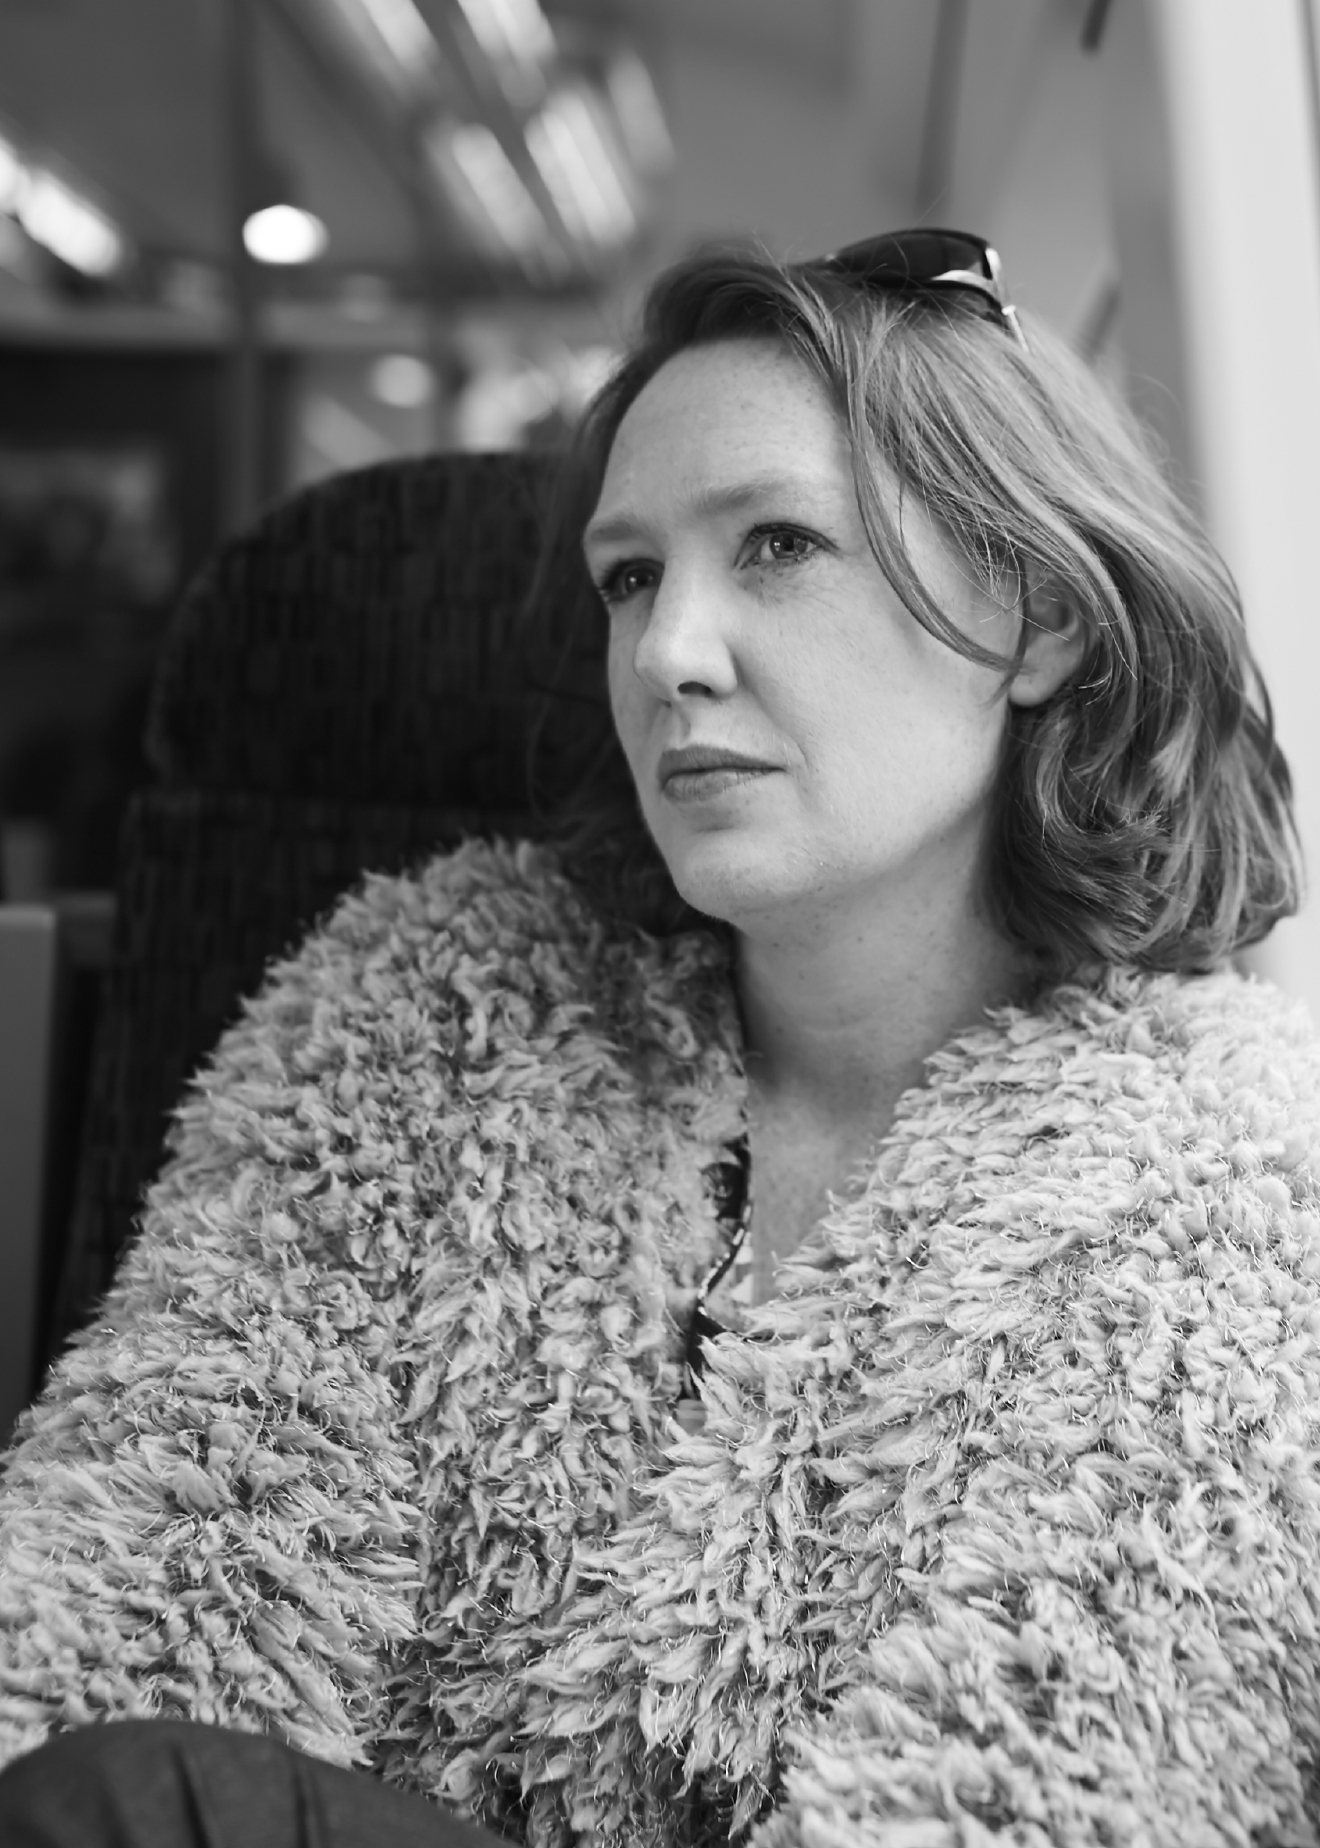 Paula Hawkins, author of Girl on the Train. (Image: Kate Neil)